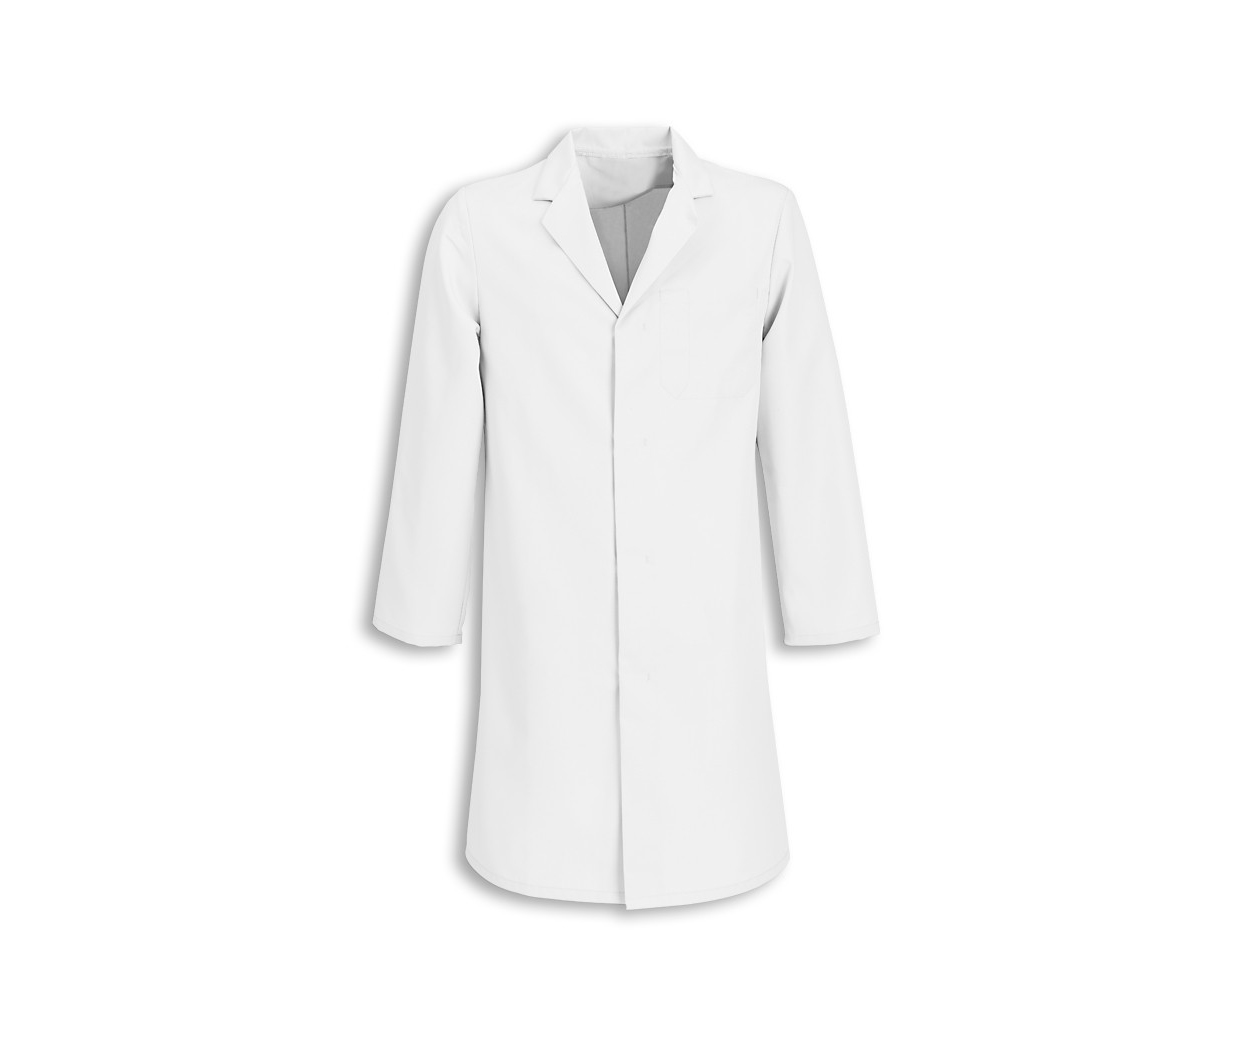 Men's Labcoat